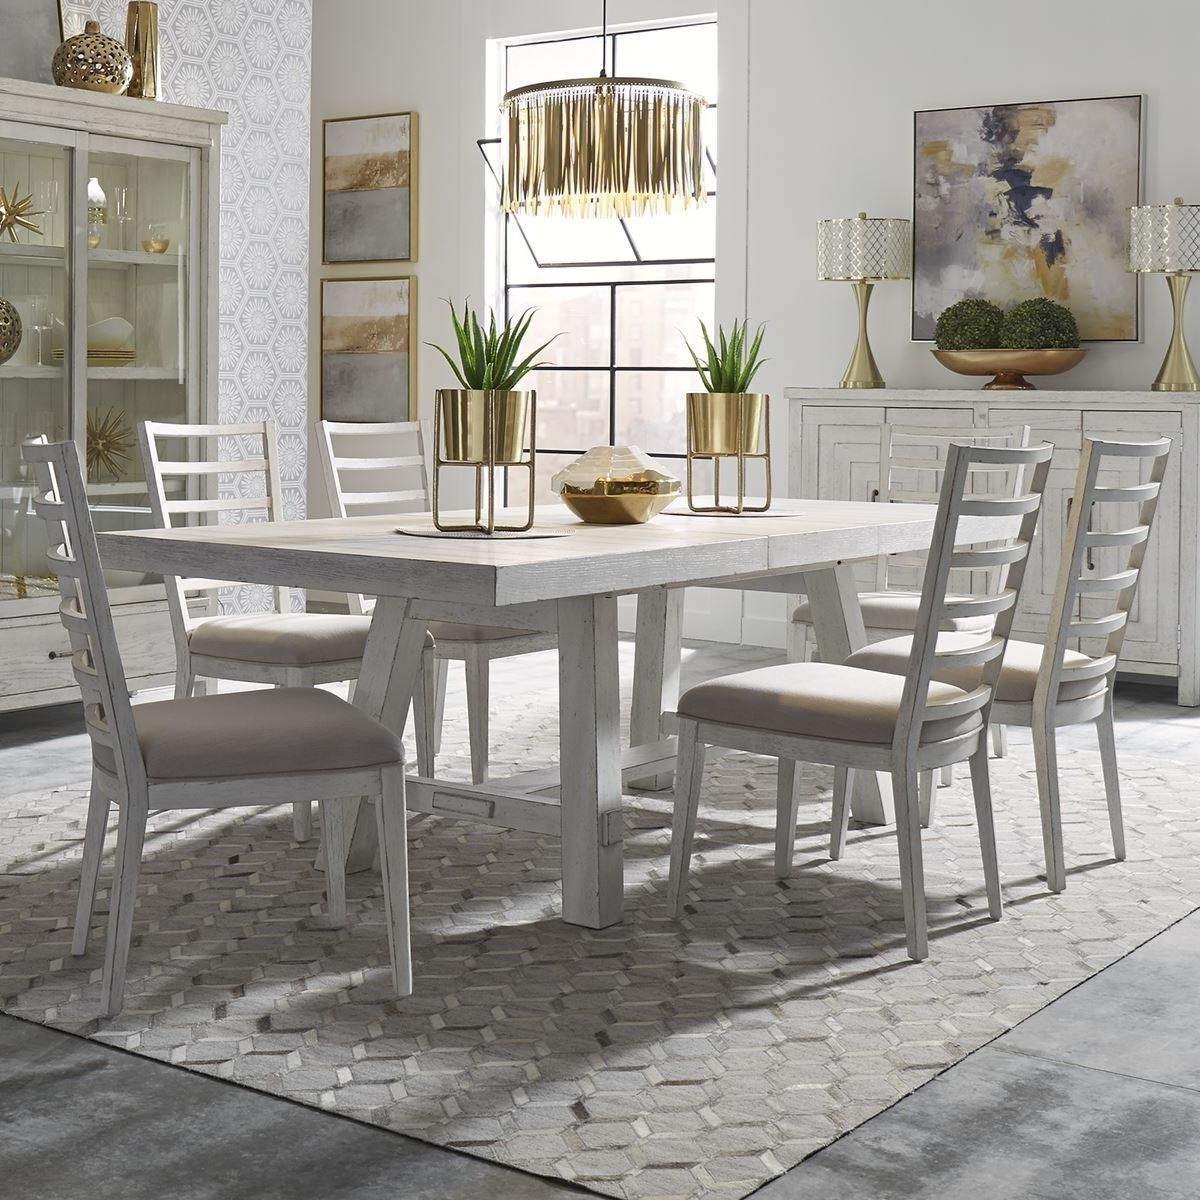 Modern Farmhouse 7-Piece Trestle Table and Chair Set by Liberty Furniture at Northeast Factory Direct